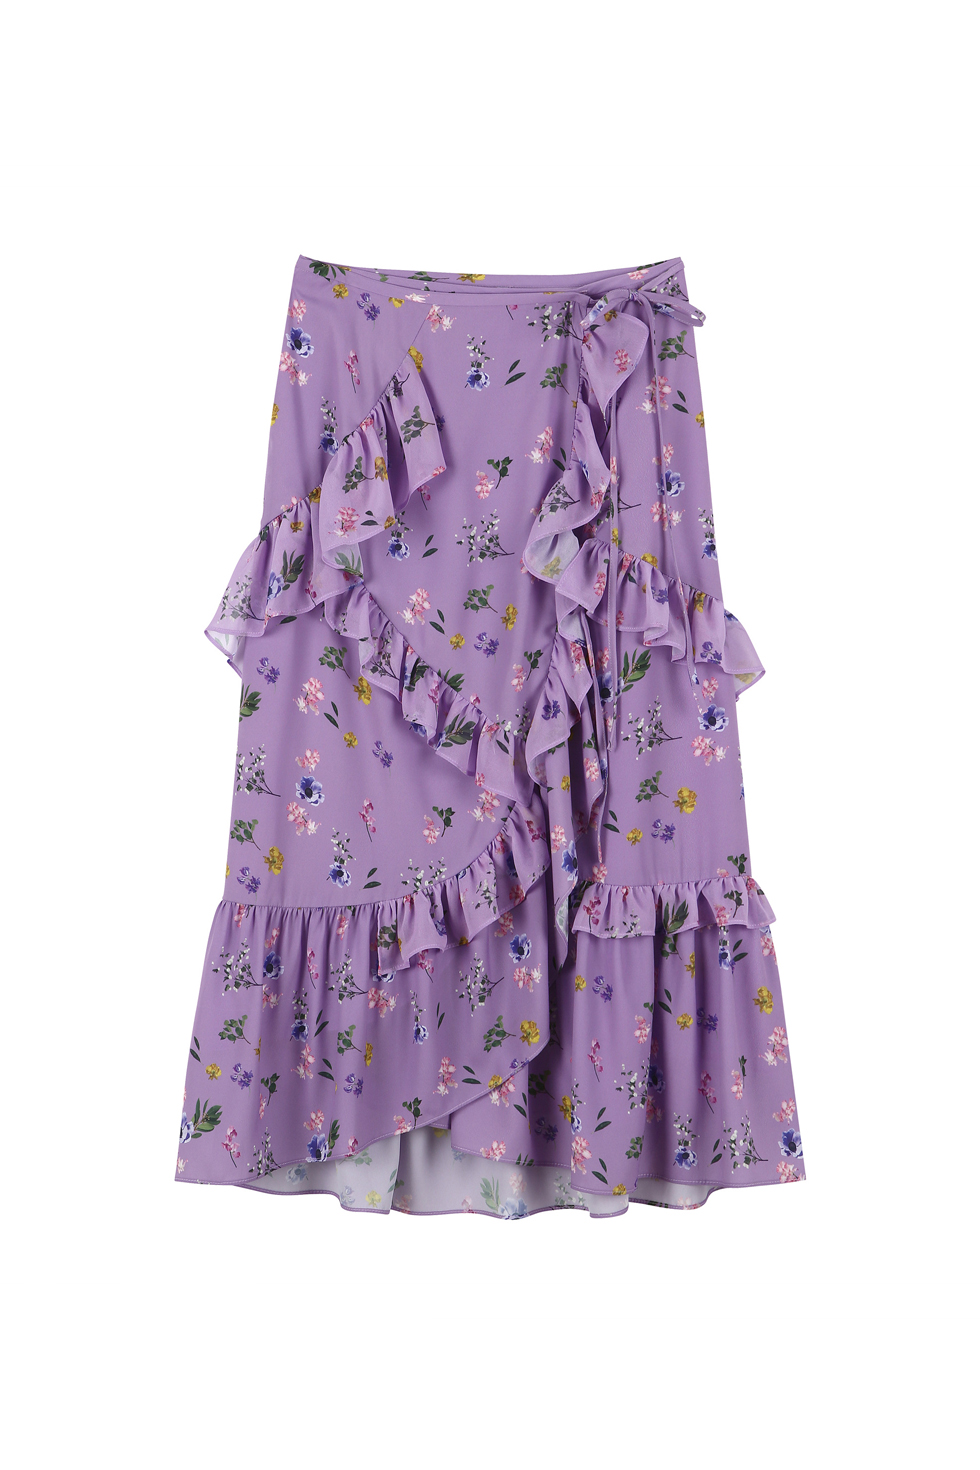 RUFFLE MIDI SKIRT - PURPLE